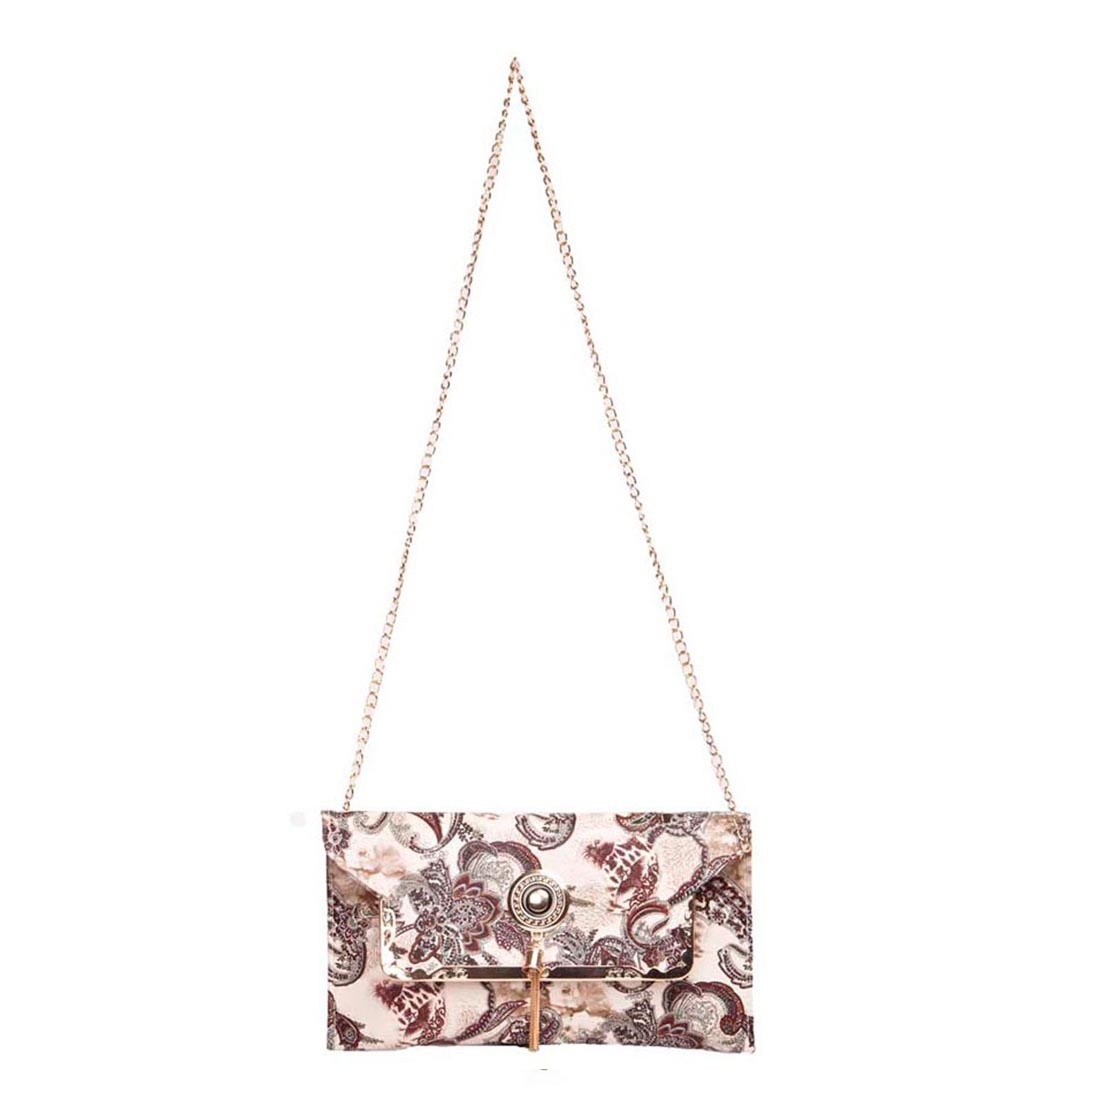 Aliado | Aliado Faux Leather Printed Cream and  Brown Fold Over Magnetic Snap Sling Bag